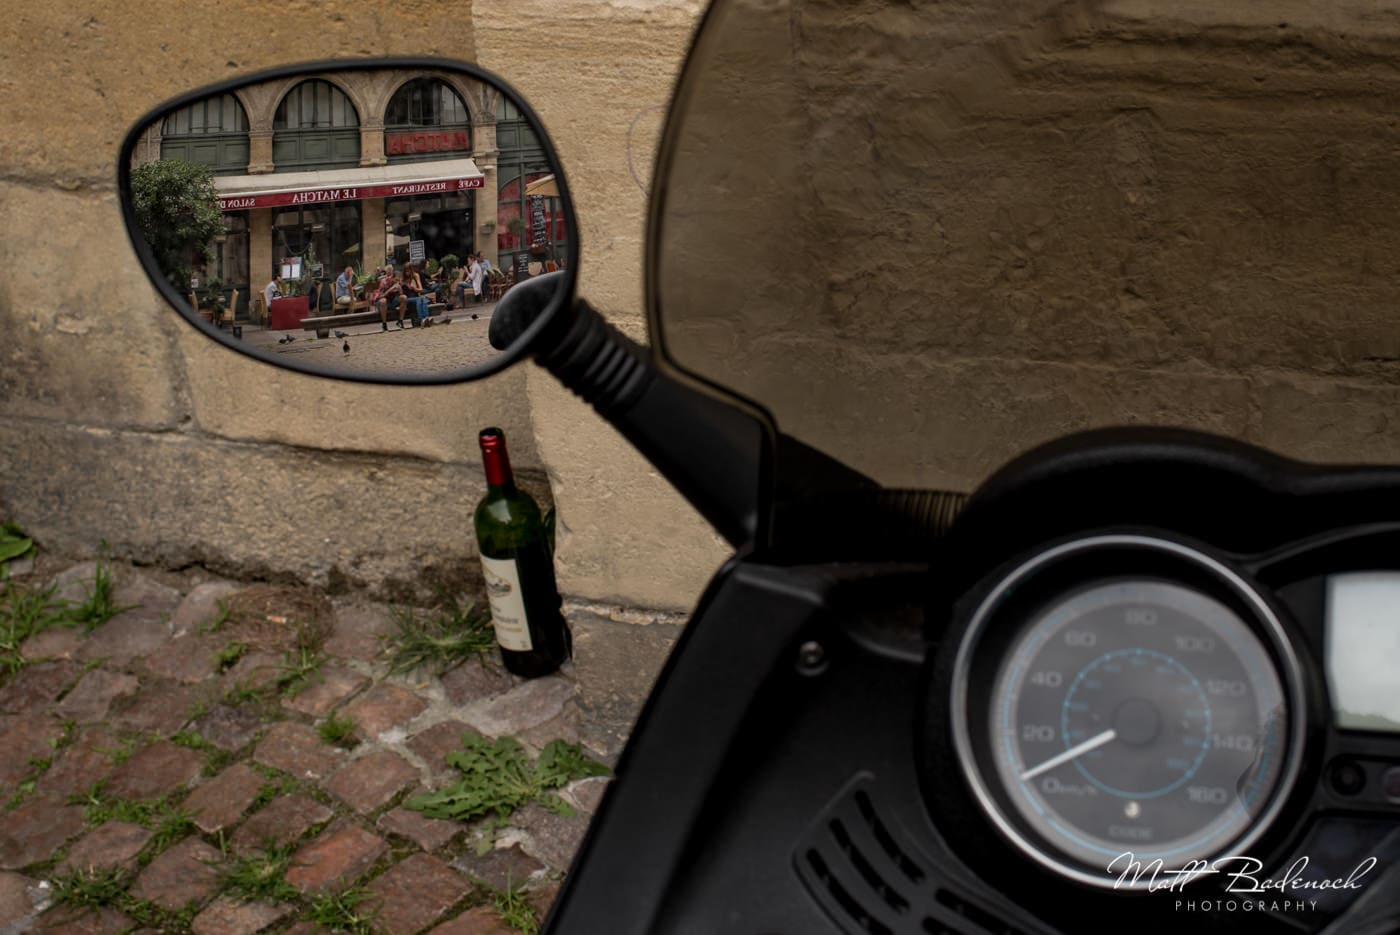 scooter, bottle of wine reflection of french cafe | bordeaux street photography